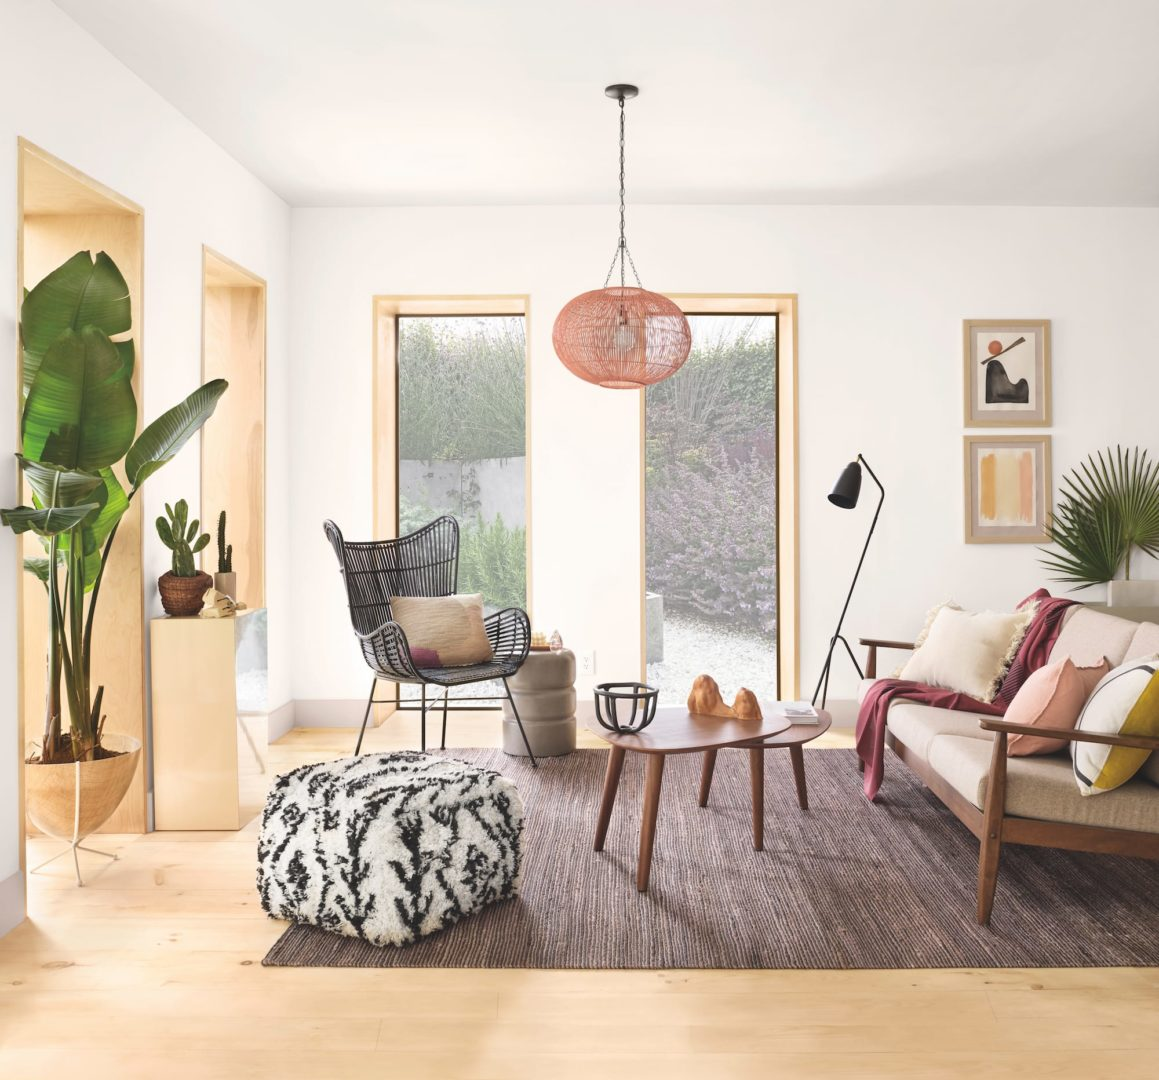 Living Room Ideas To Steal For Comforting Vibe Found In: Sherwin-Williams Reveals Colormix Trend Forecast For 2020